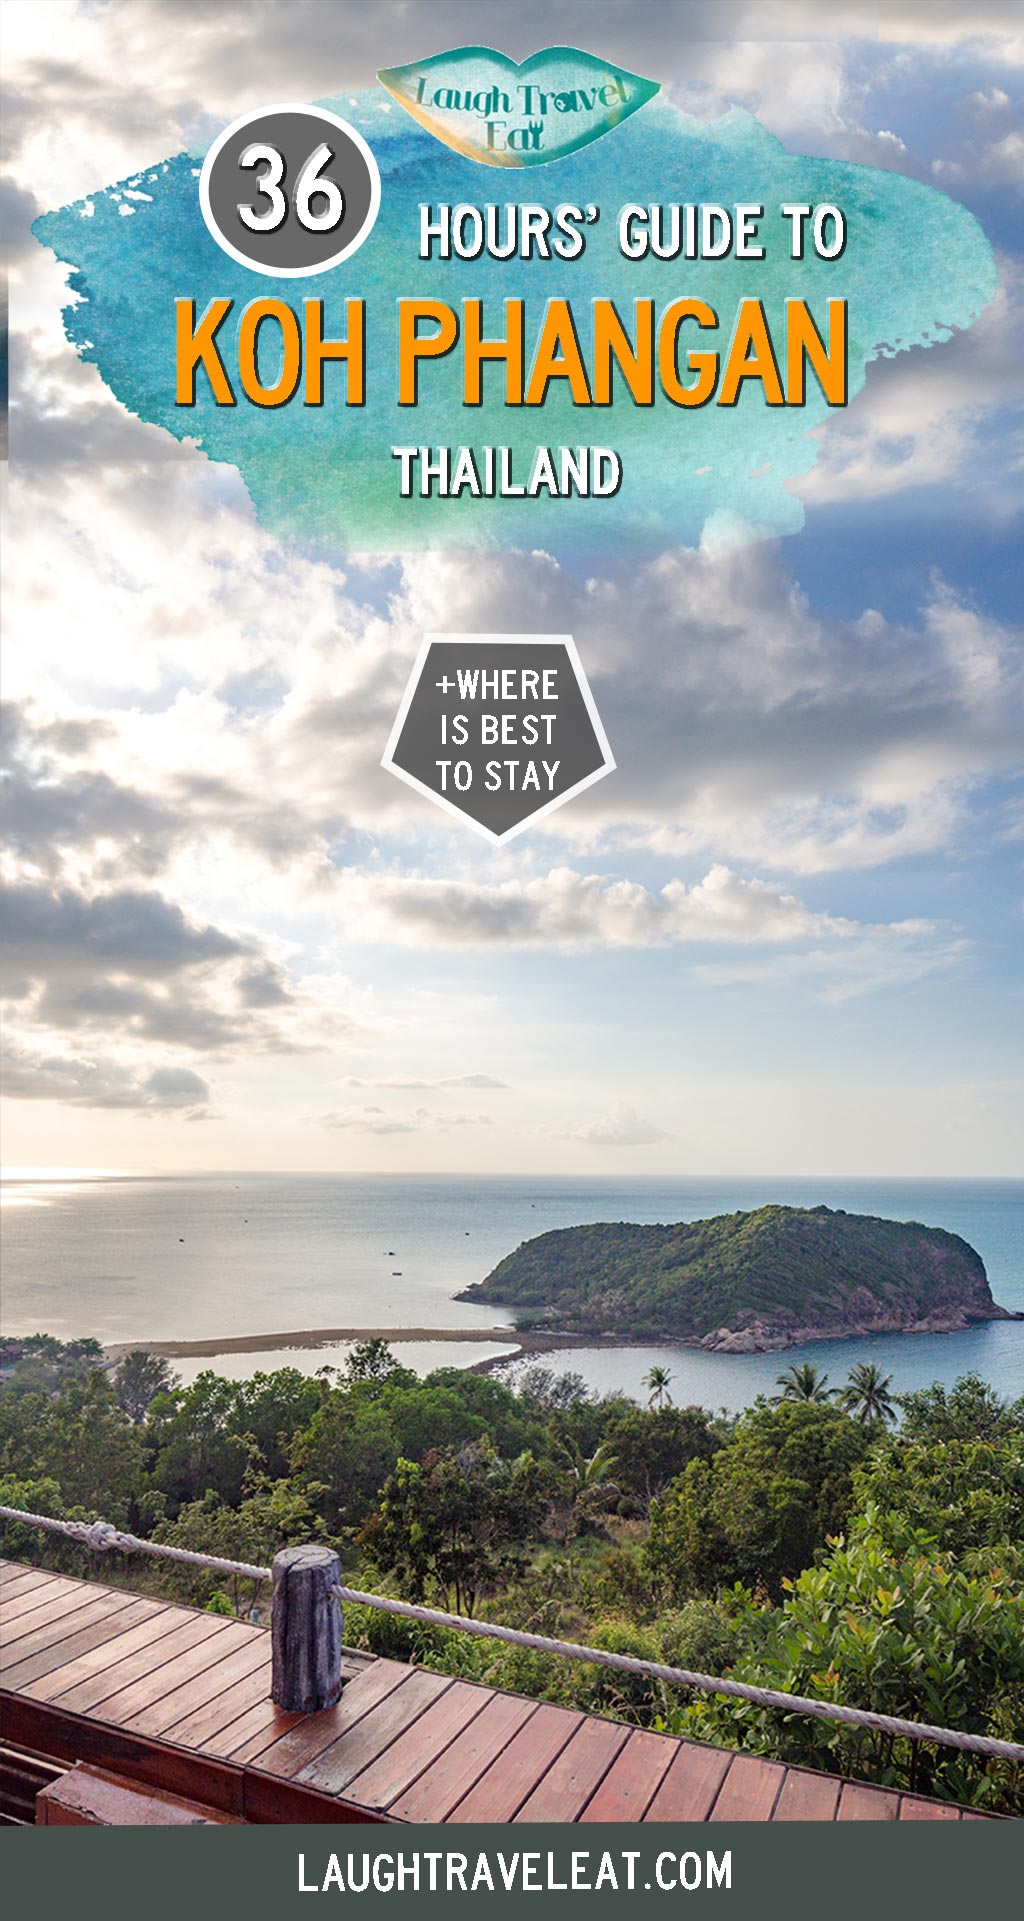 Known as the party island, Koh Pha-Ngan is somewhere that I wasn't sure I would like. While it's full of beautiful beaches and vista, it is more suited to people who can ride a motorbike and like to party. That said, if you - like me - want to visit the island on your trip, here's how I made the best of the 36 hours I had: #KohPhangan #Thailand